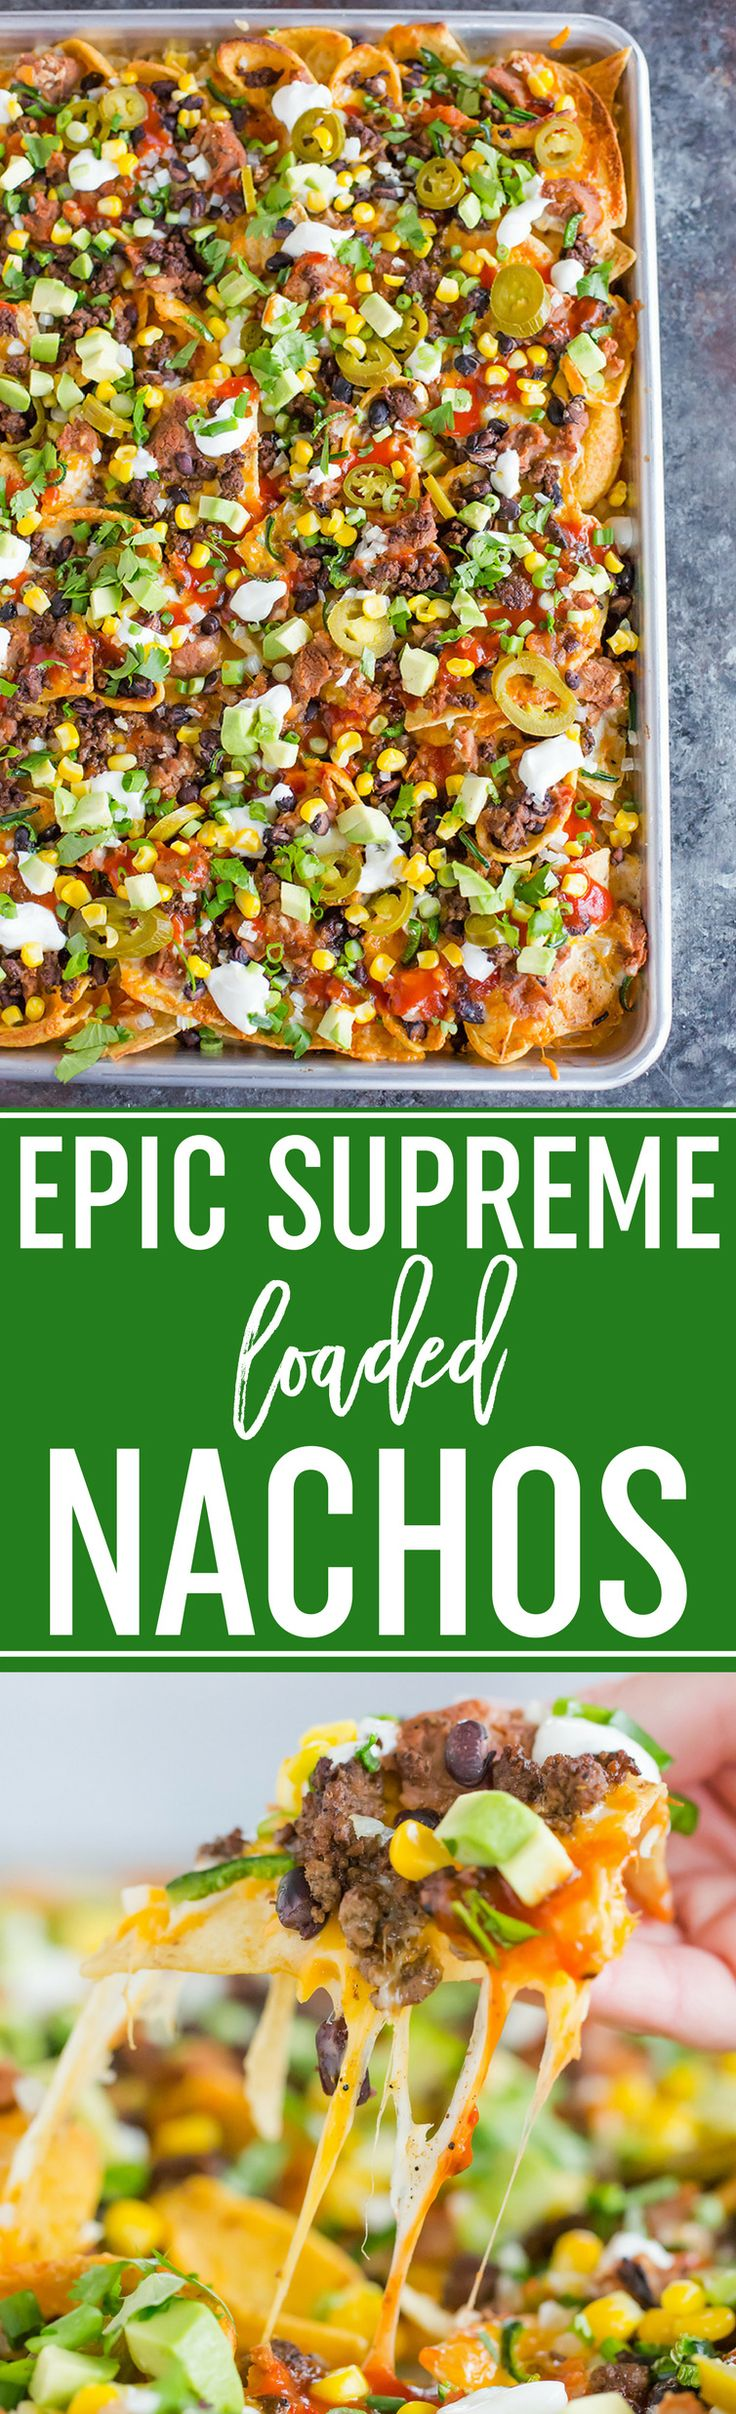 Epic Supreme Loaded Nachos :: The absolute epitome of loaded nachos... a mixture of tortilla and corn chips topped with tons of cheese and all of the best toppings you could imagine!  via @browneyedbaker